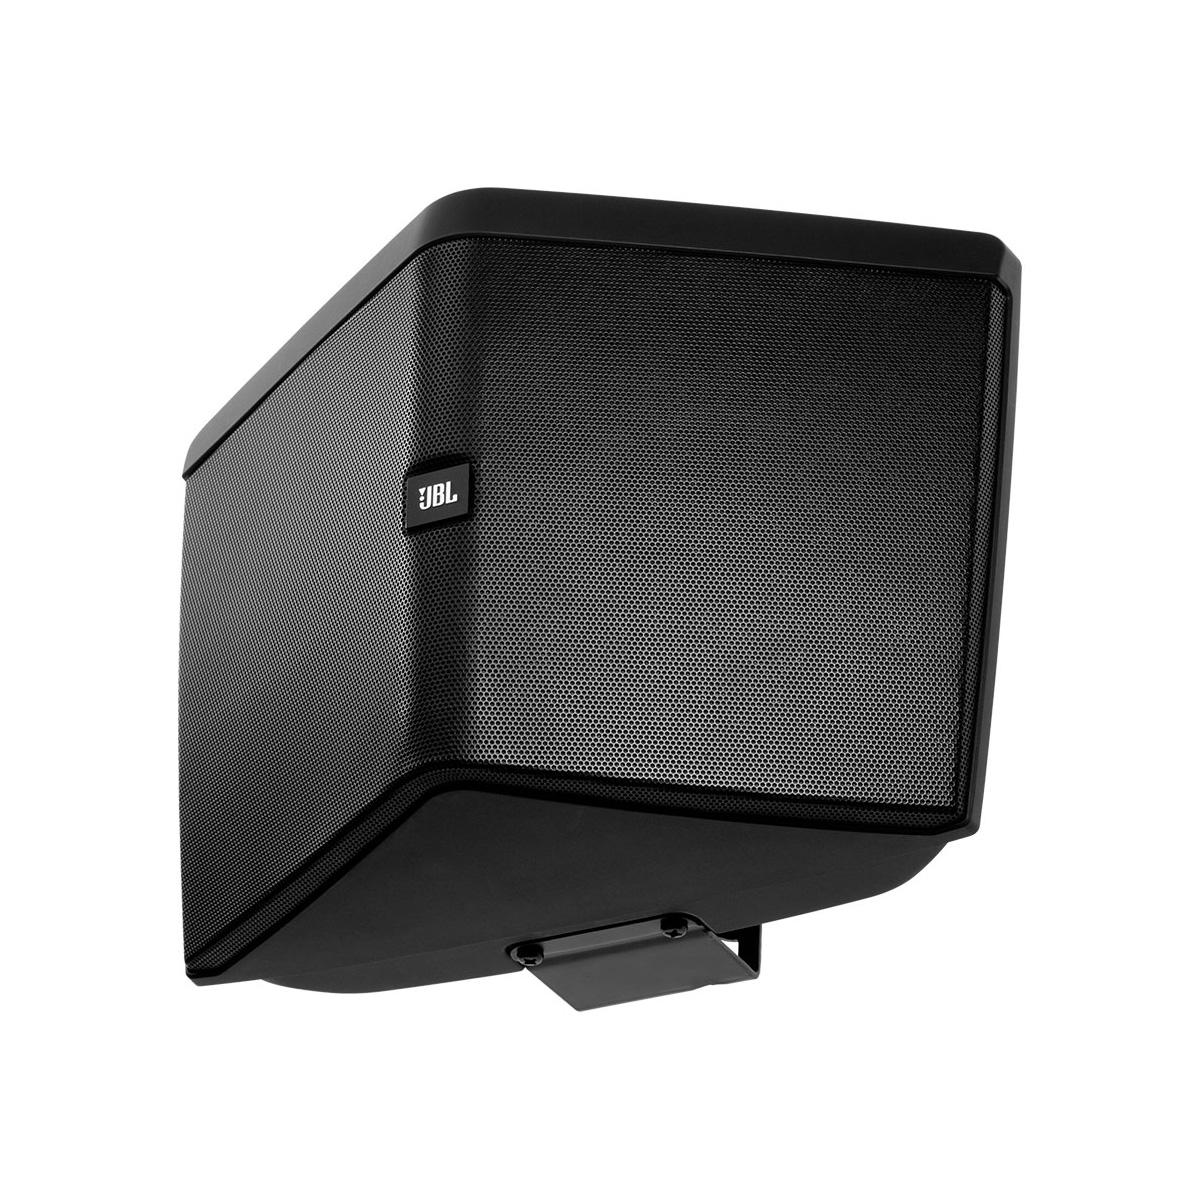 Restaurant Sound System Package Pro Audio Superstore Speaker With Volume Control Wiring Diagram On 70v Image Of The Jbl Hst Included In